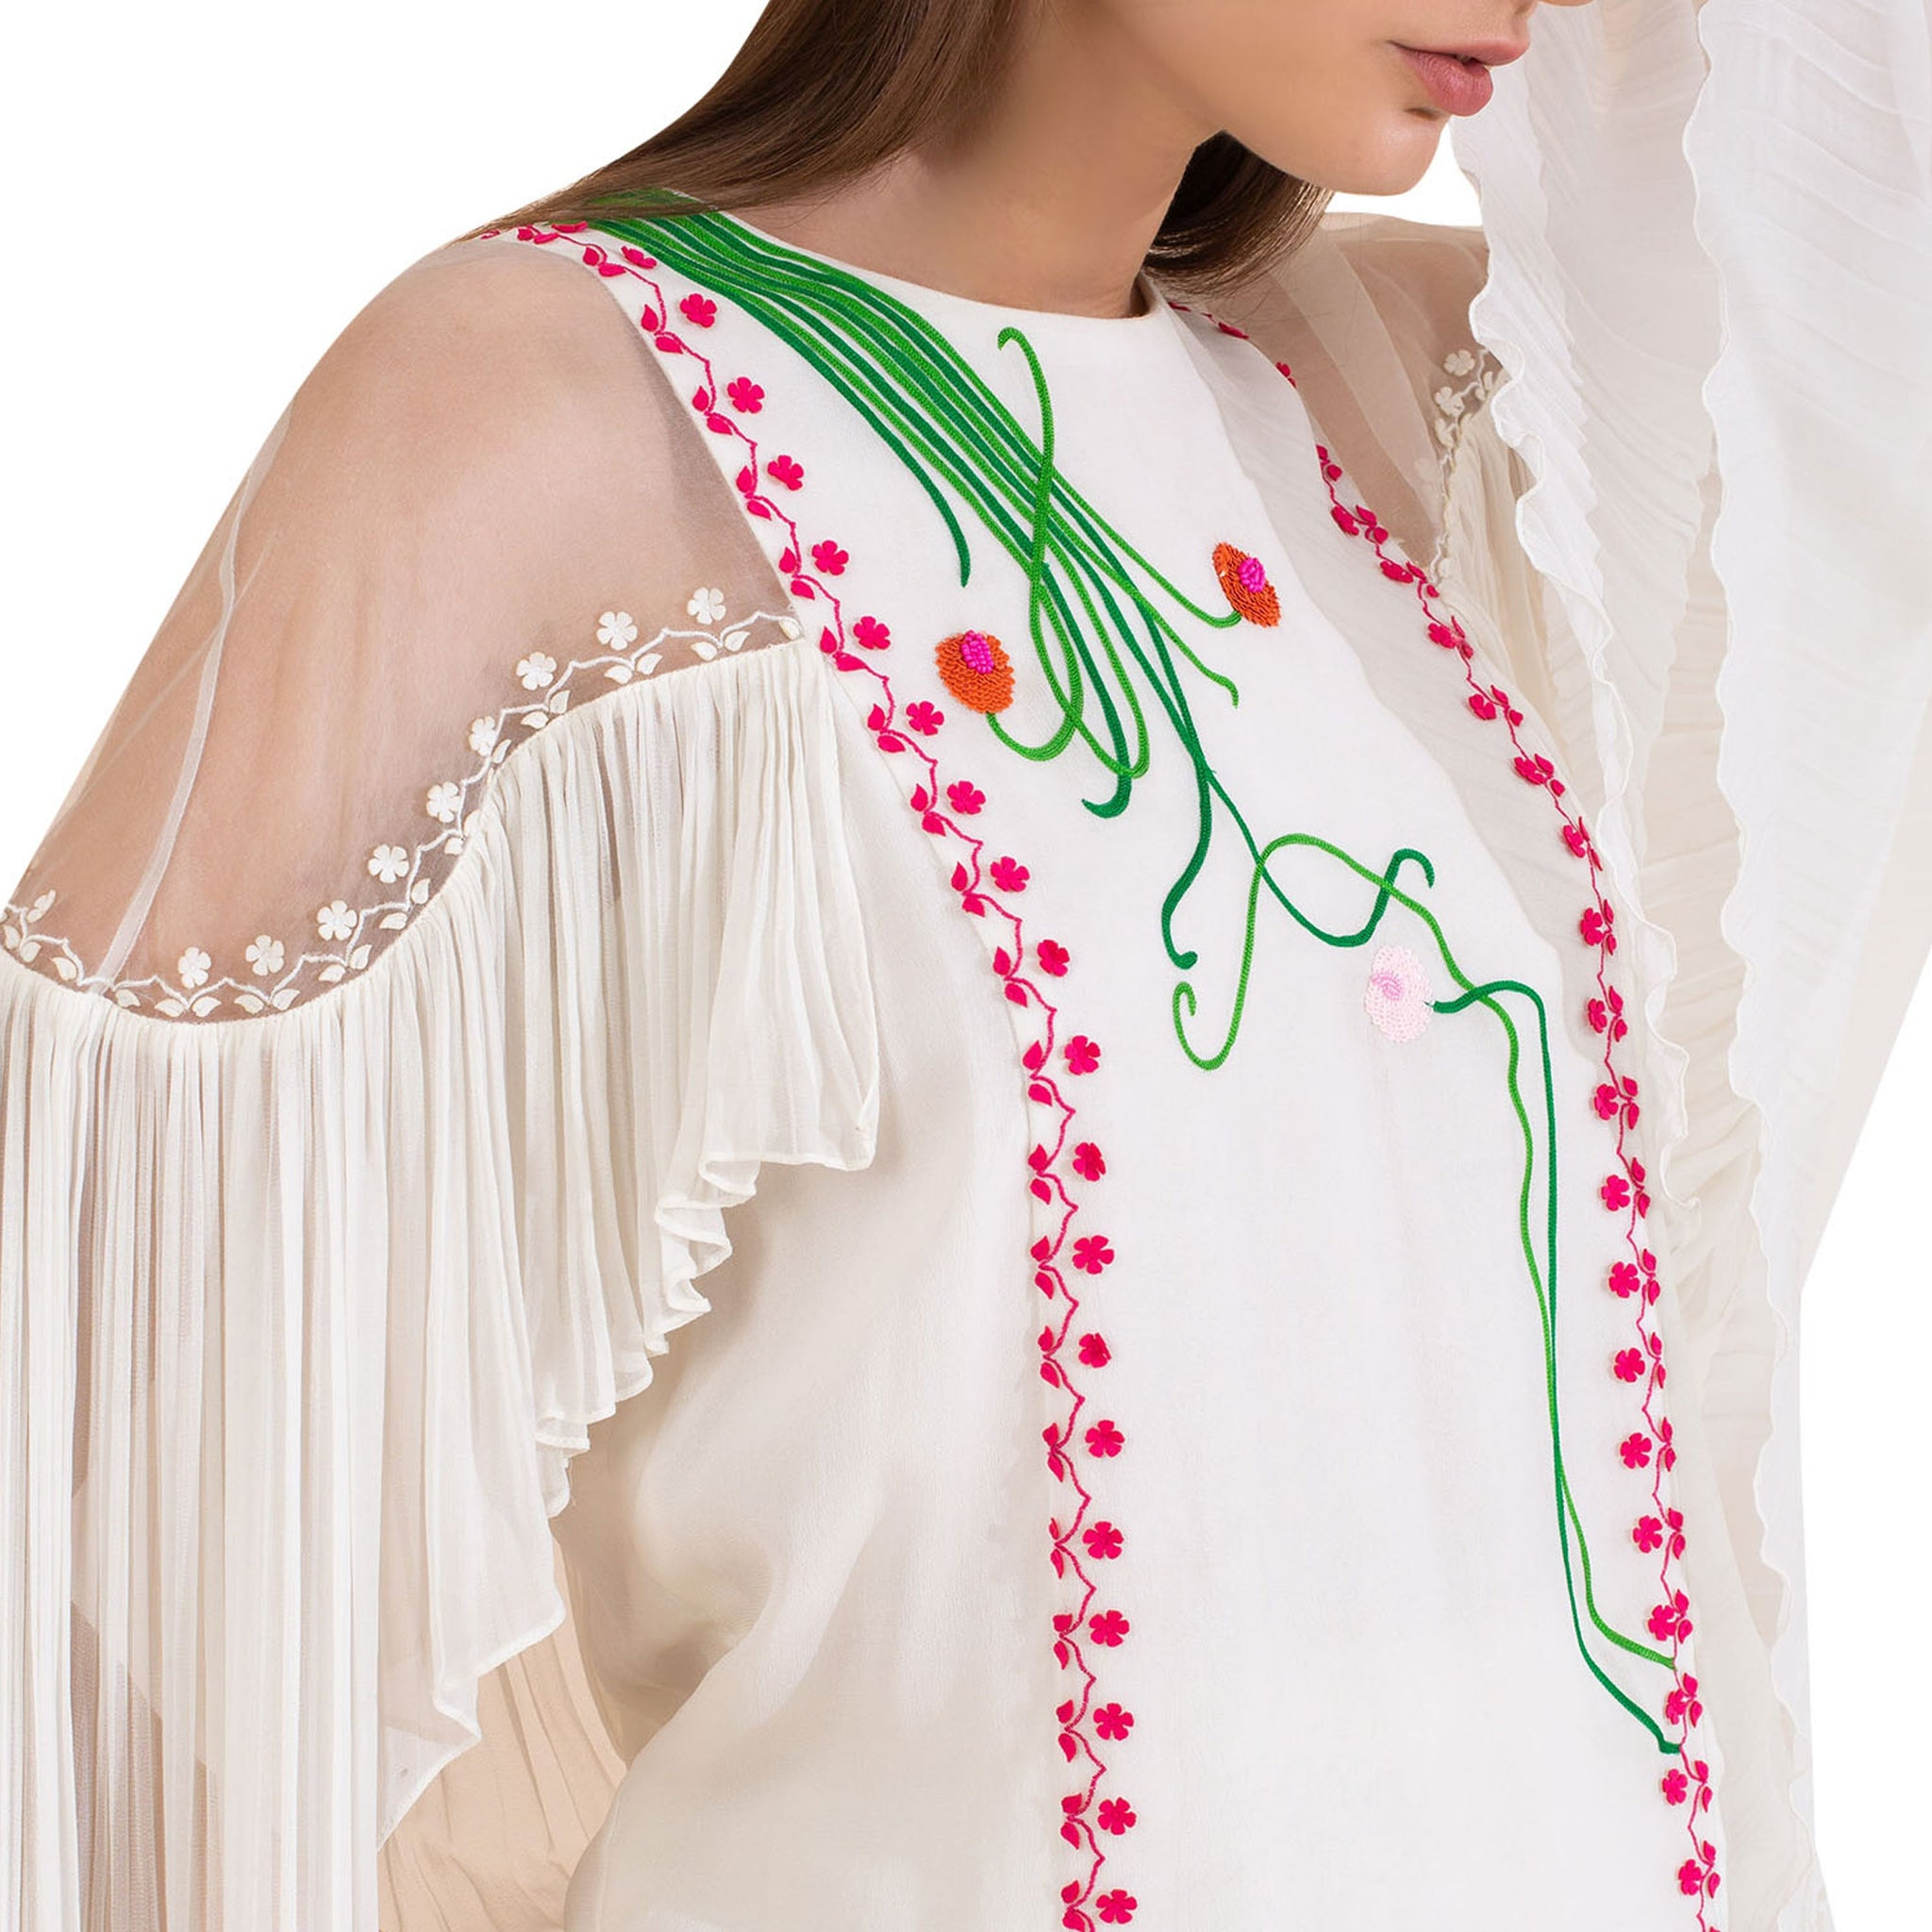 Embroidered Top with Statement Sleeves